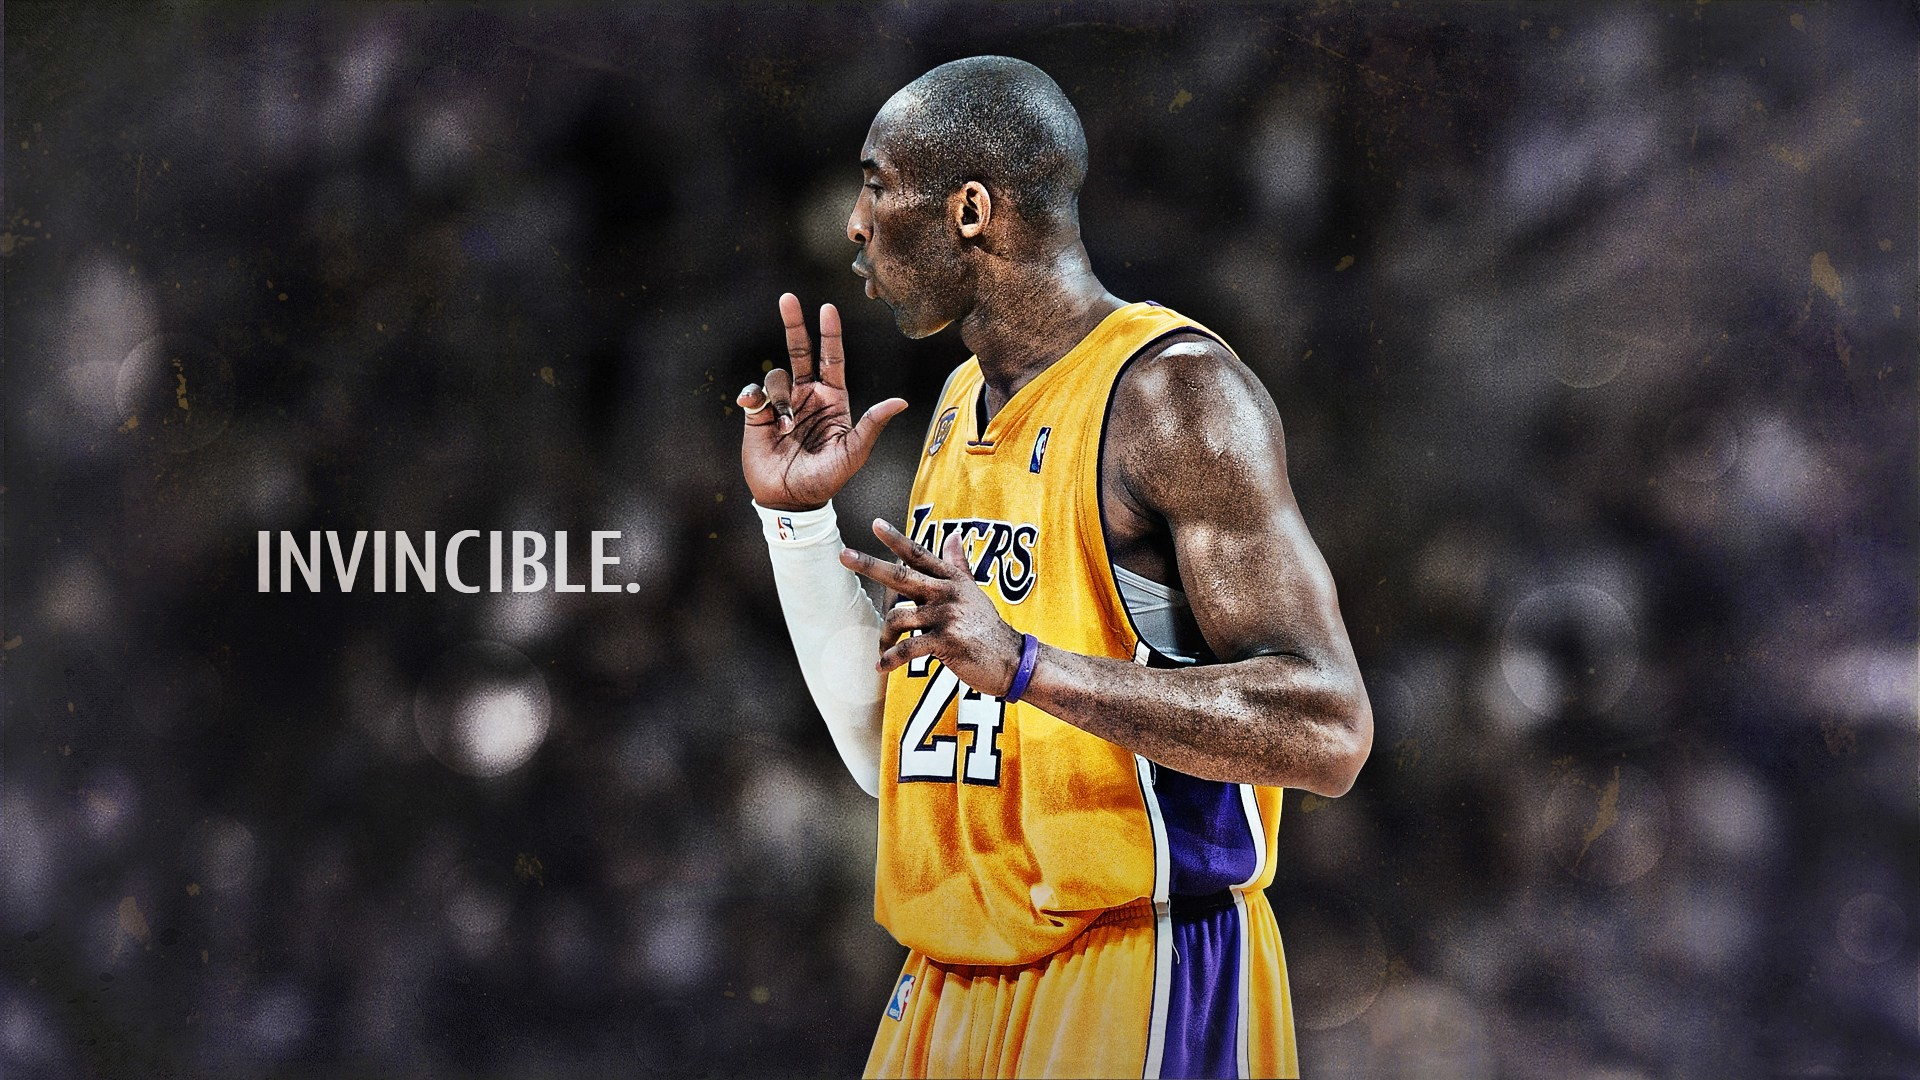 Res: 1920x1080, Los Angeles Lakers Kobe Bryant 1080p HD Wallpaper Background